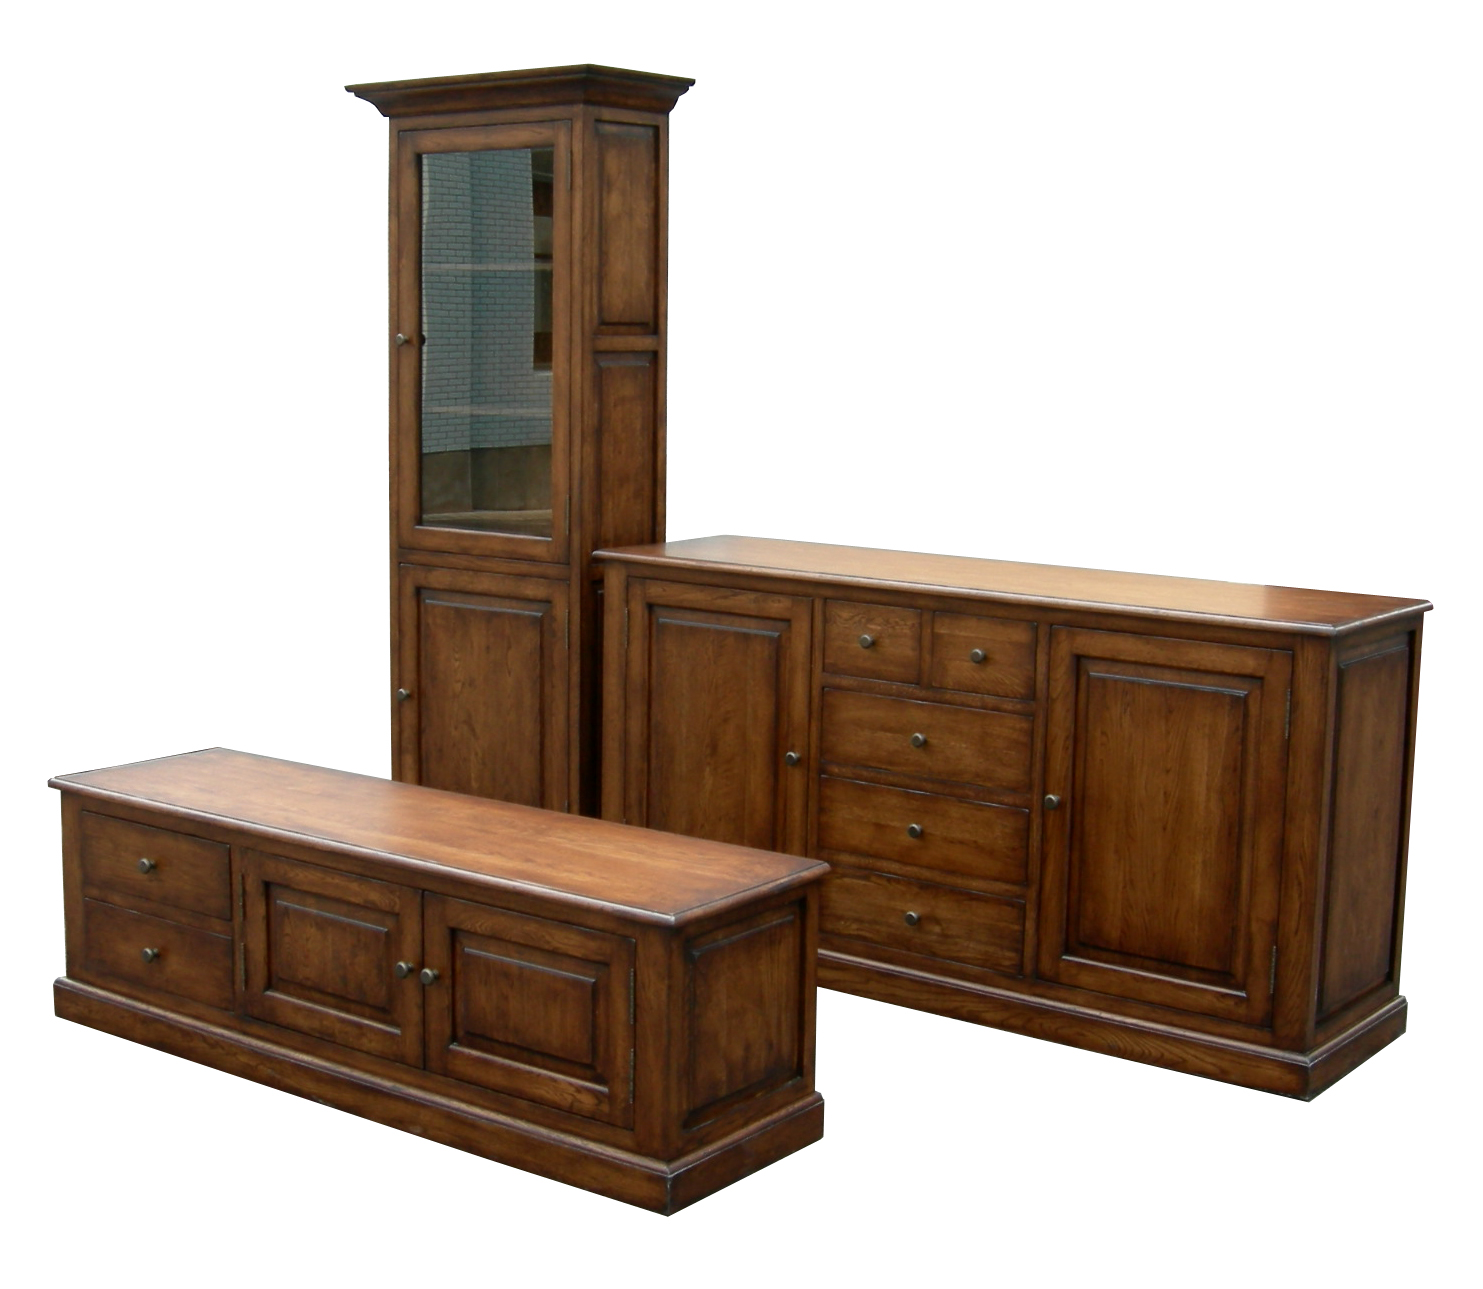 Wooden Furniture Designs - Wooden Furniture shops in kerala | Woodenza